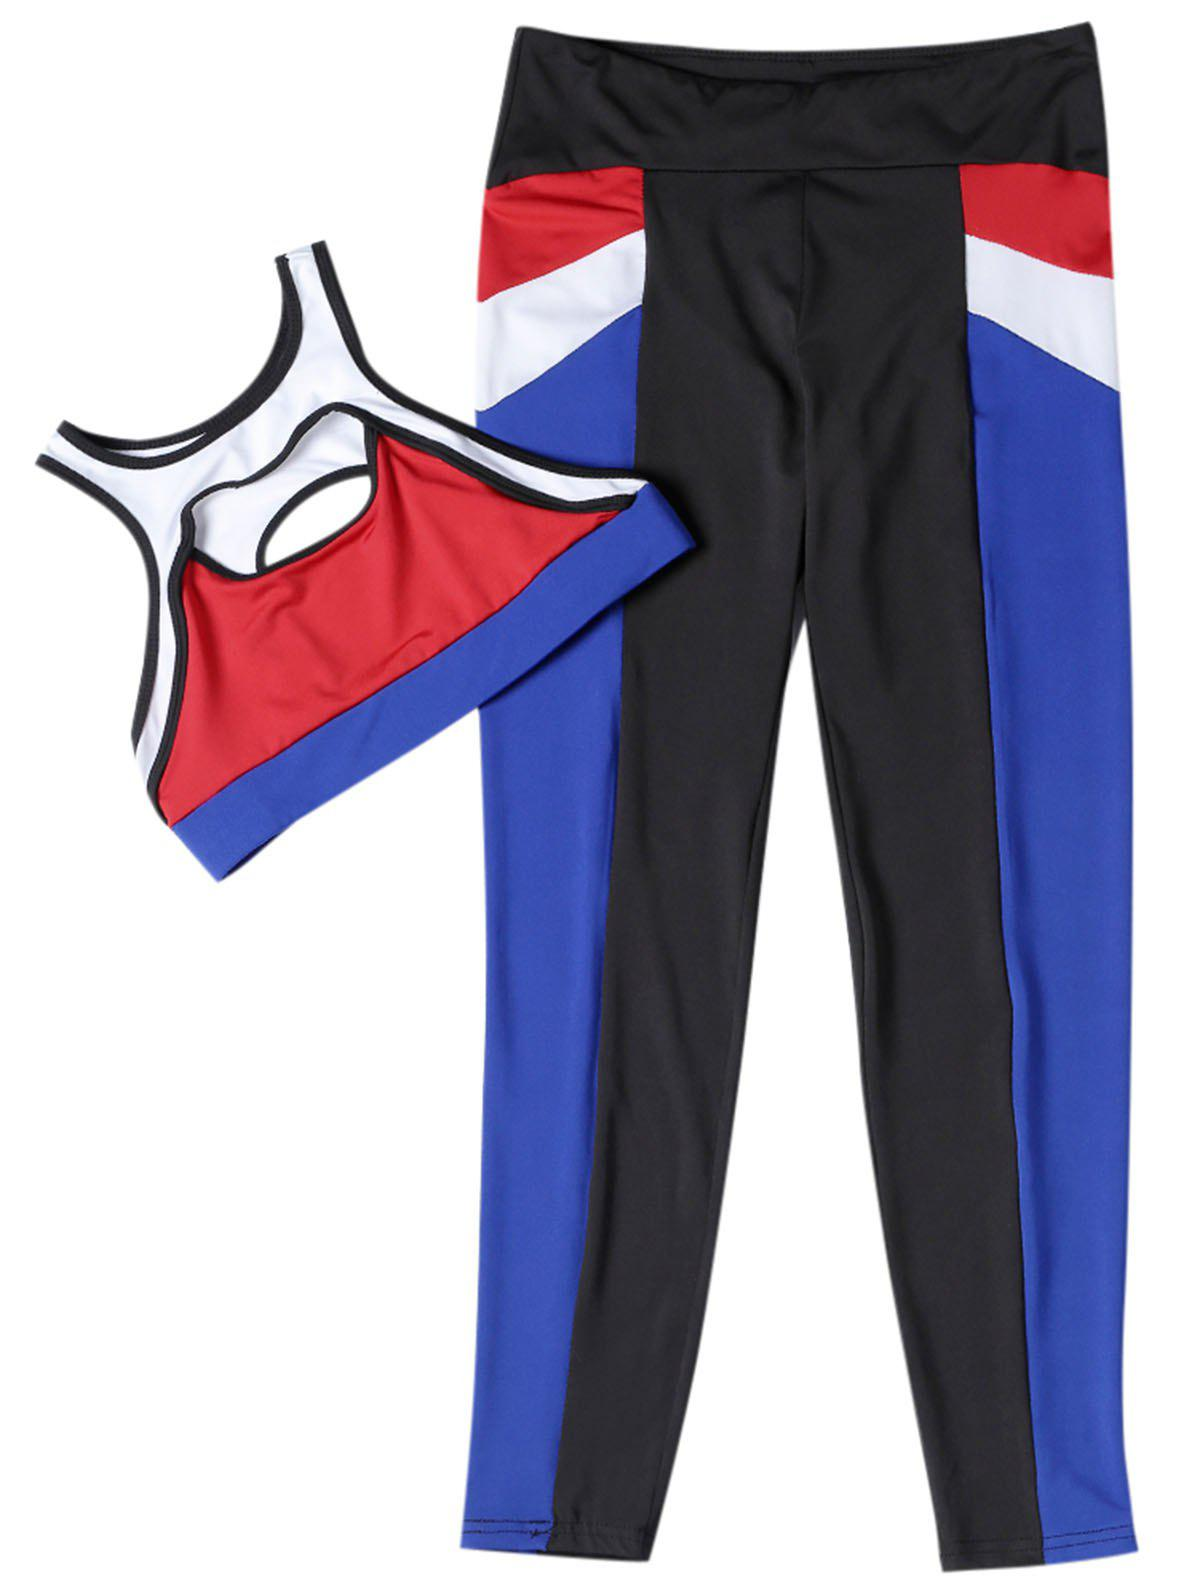 Fitted Yoga Sports Suit Crop Top Long Pant Color Blocking Sportswear - multicolor S